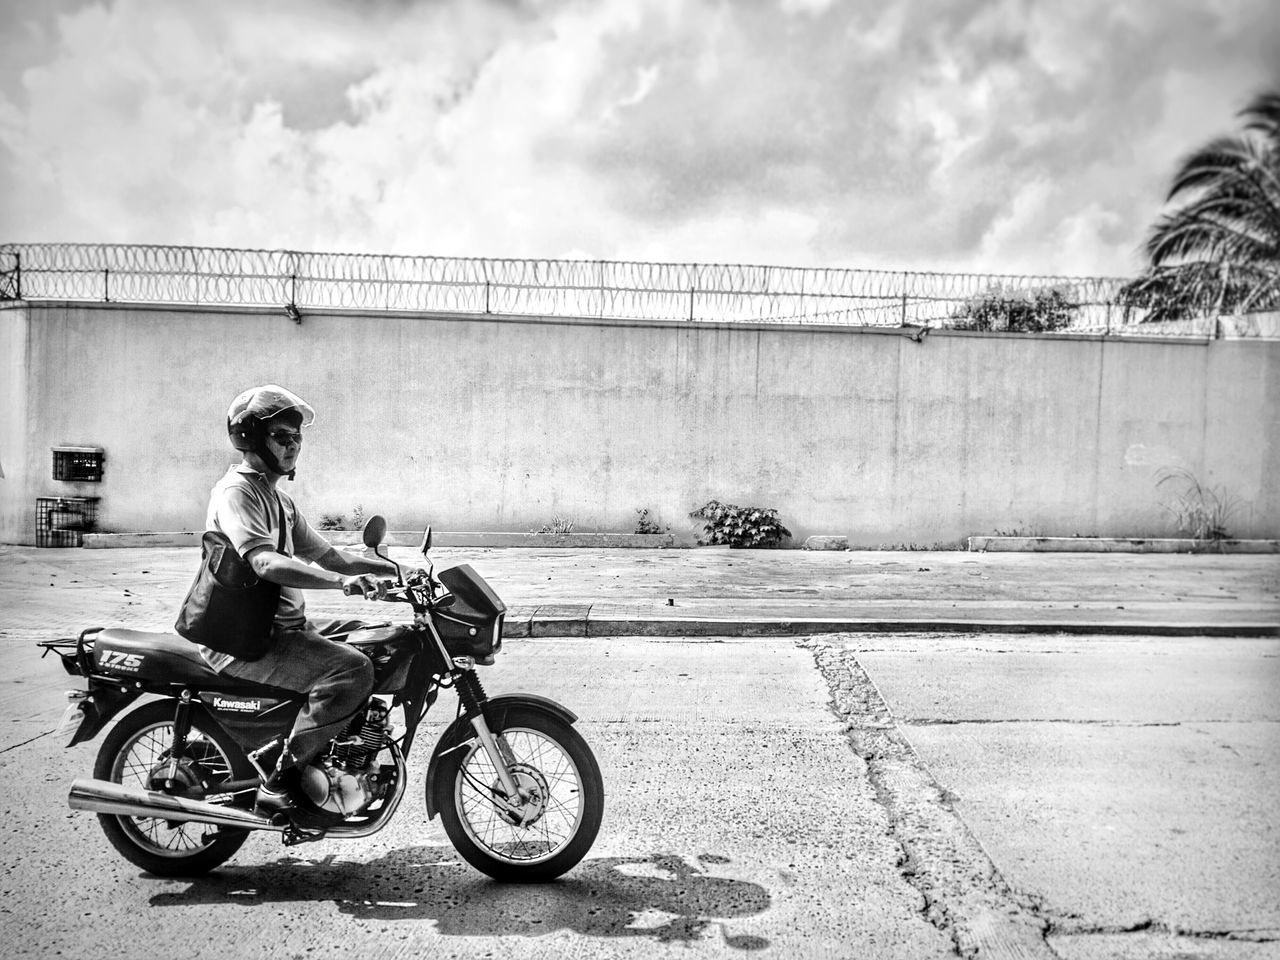 The Motorist Motorcycle Motorbike Black And White Black And White Photography Mobile Photography Monochrome Light And Shadow Eyeem Collection Eyeem Philippines Showcase July Showcase July 2016 Philippines